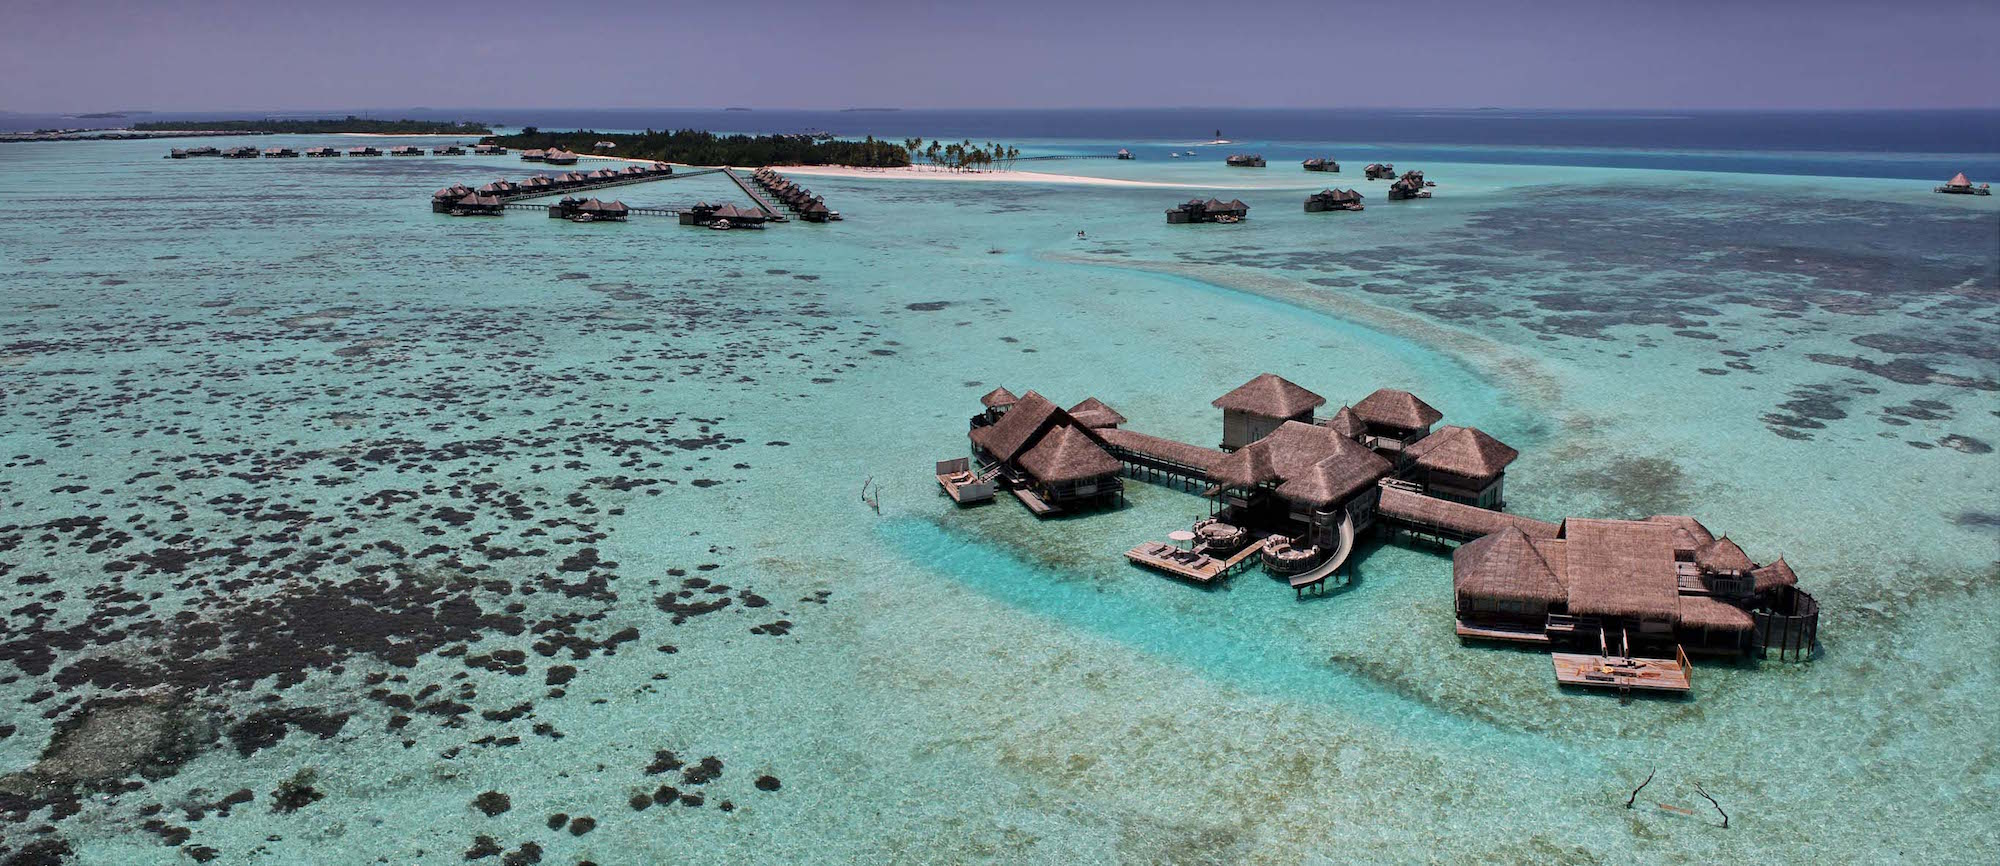 Gili Lankanfushi Resort Maldives The Private Residence Aerial View